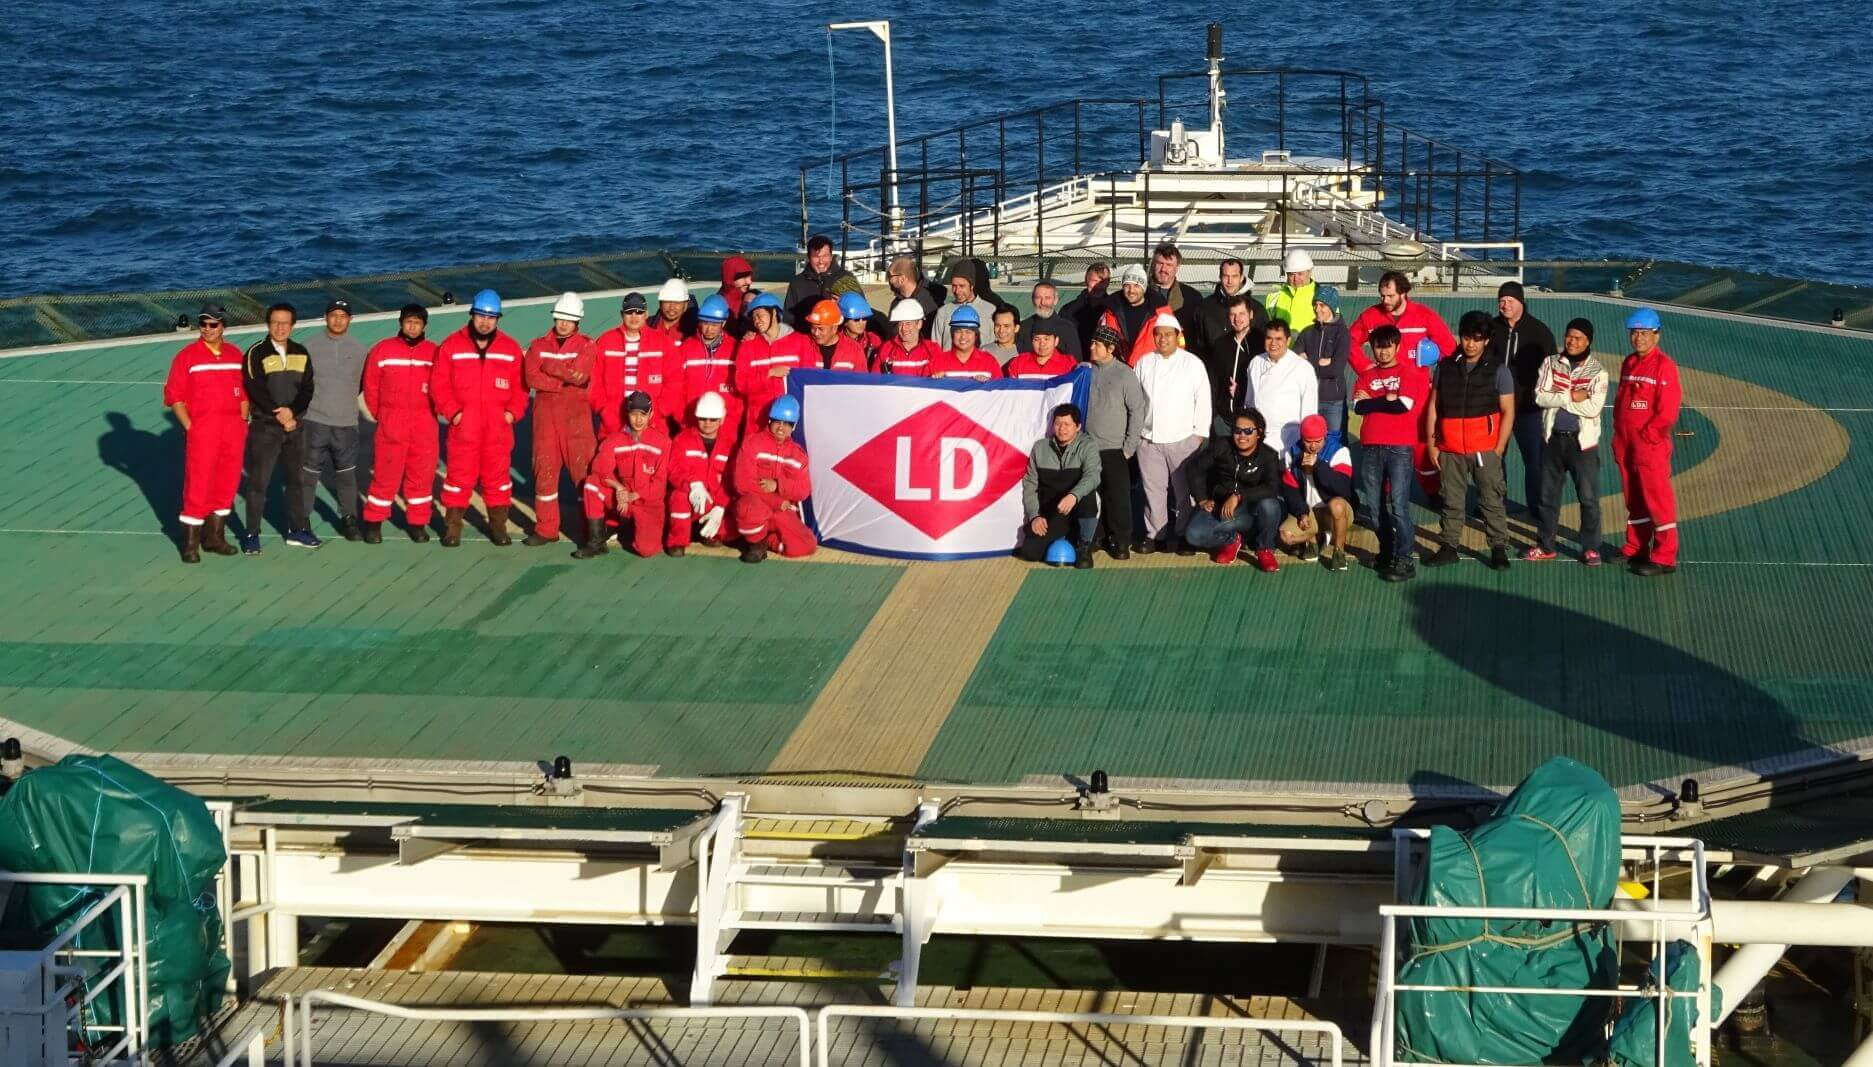 Crew LDA on board